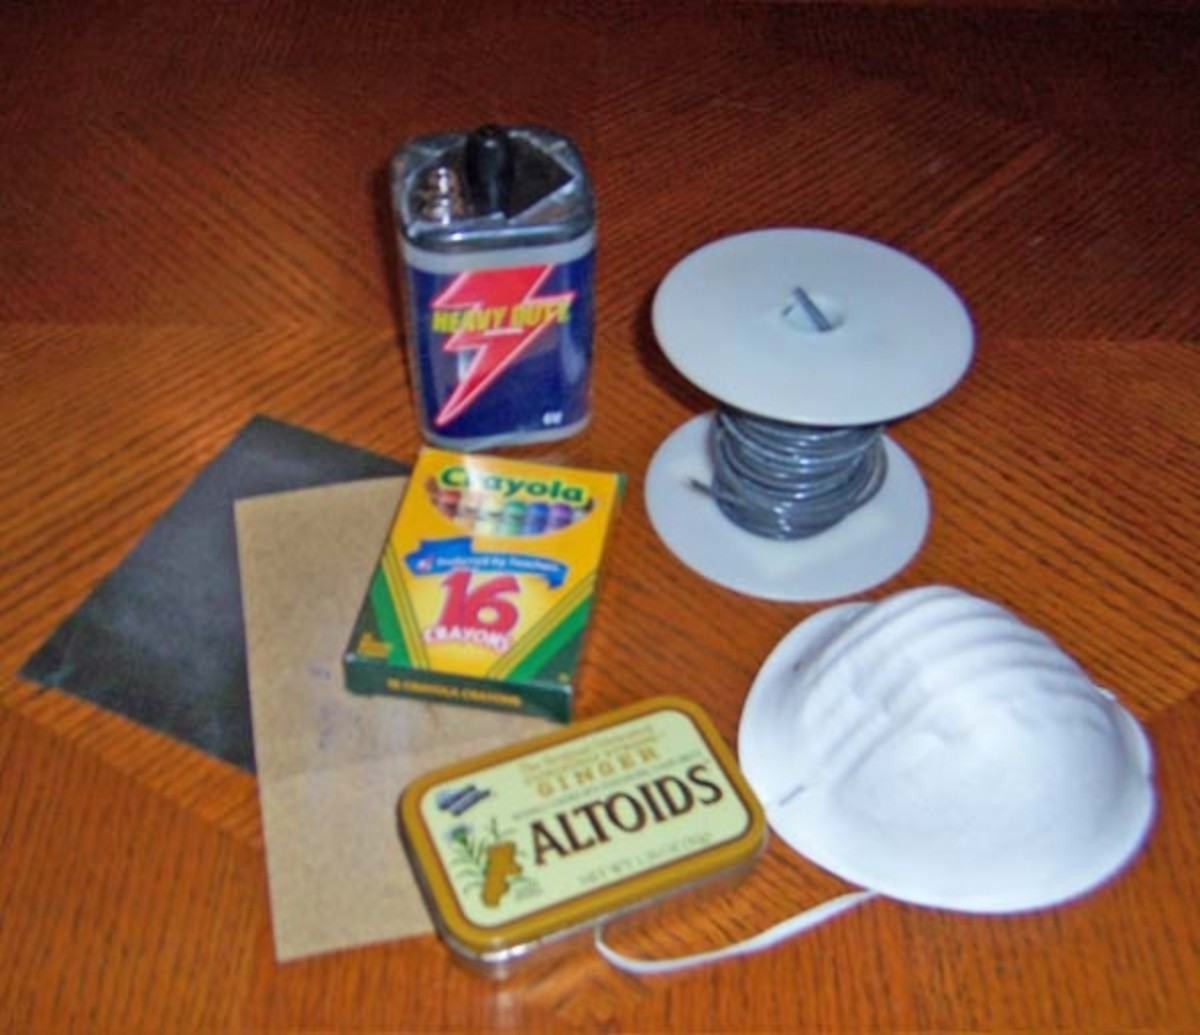 Supplies for etching candy tins with saltwater and electricity